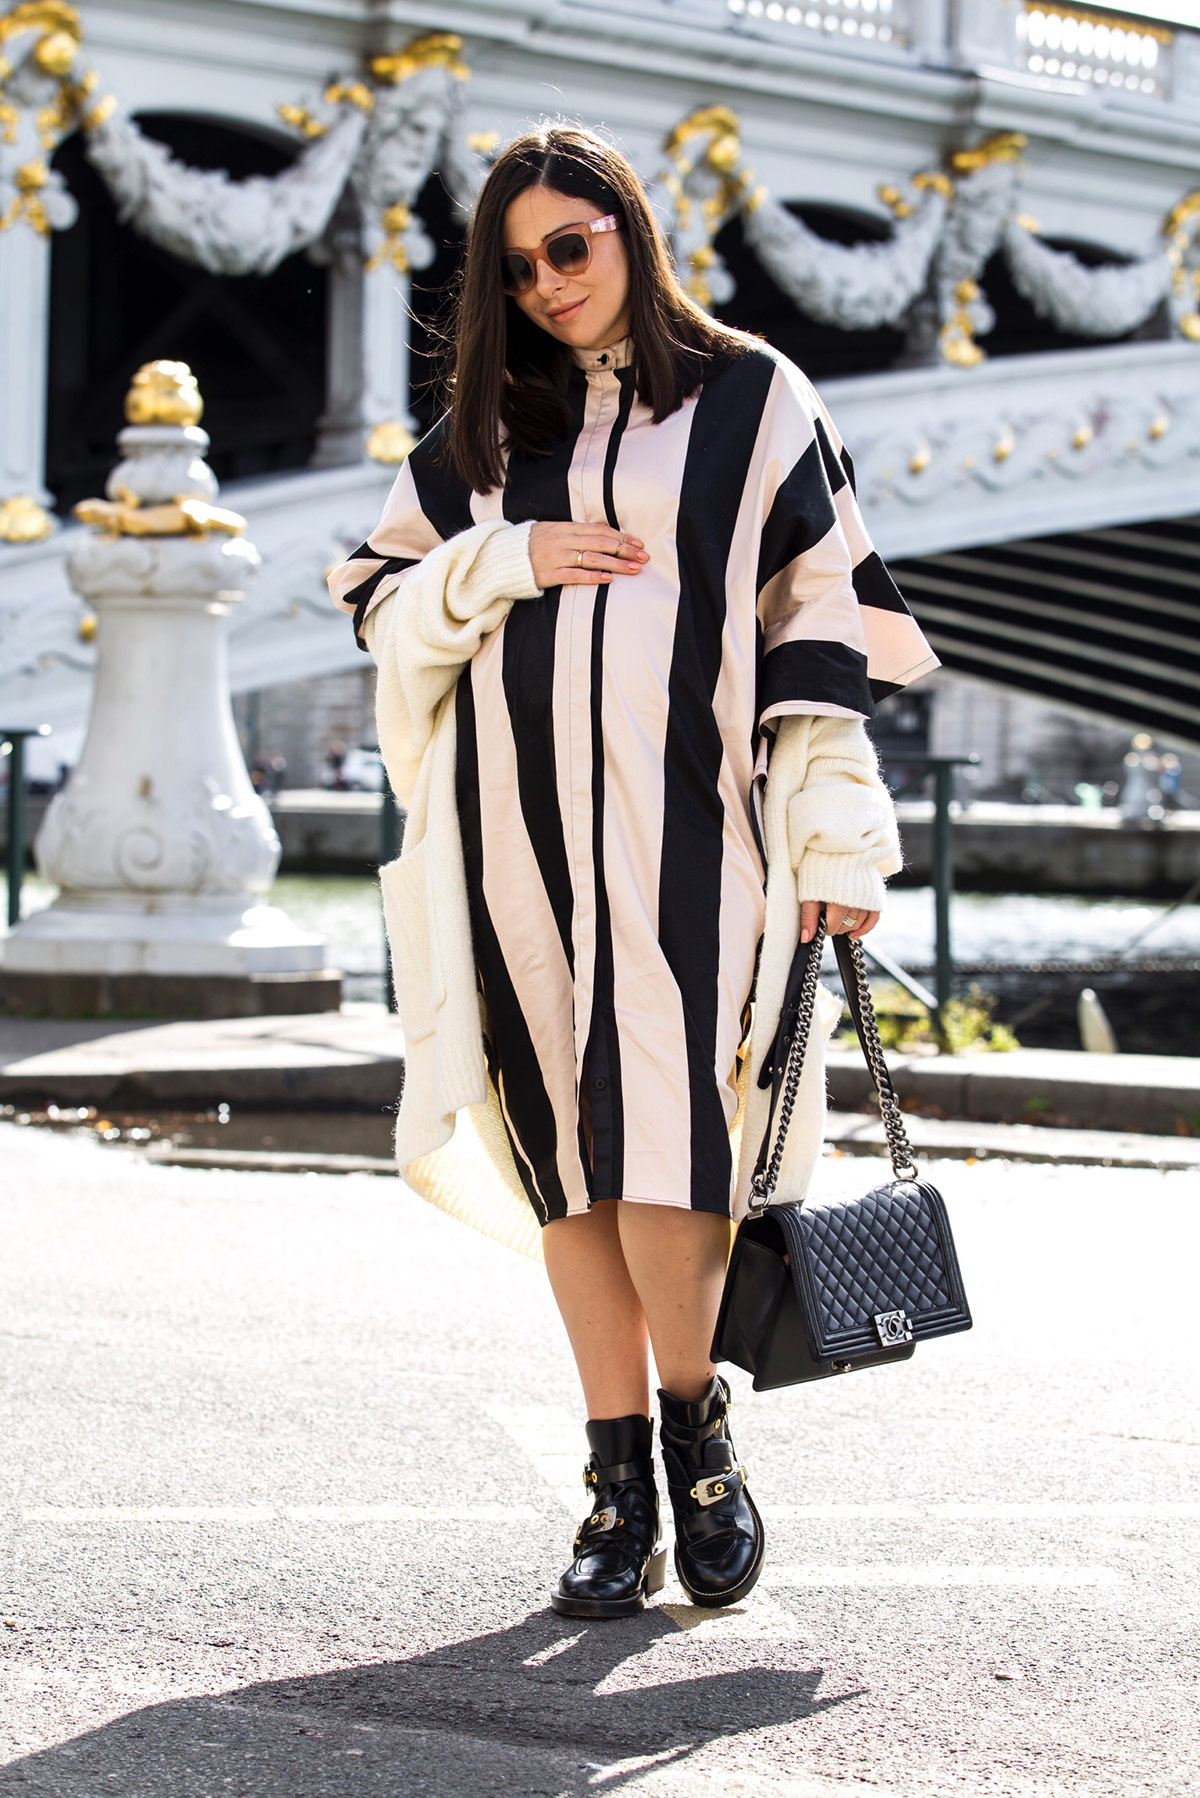 pregnancy style - stripes and ruffles dress for Paris Fashion Week by Stella Asteria - Fashion & Lifestyle Blogger - how to dress the bump elegantly